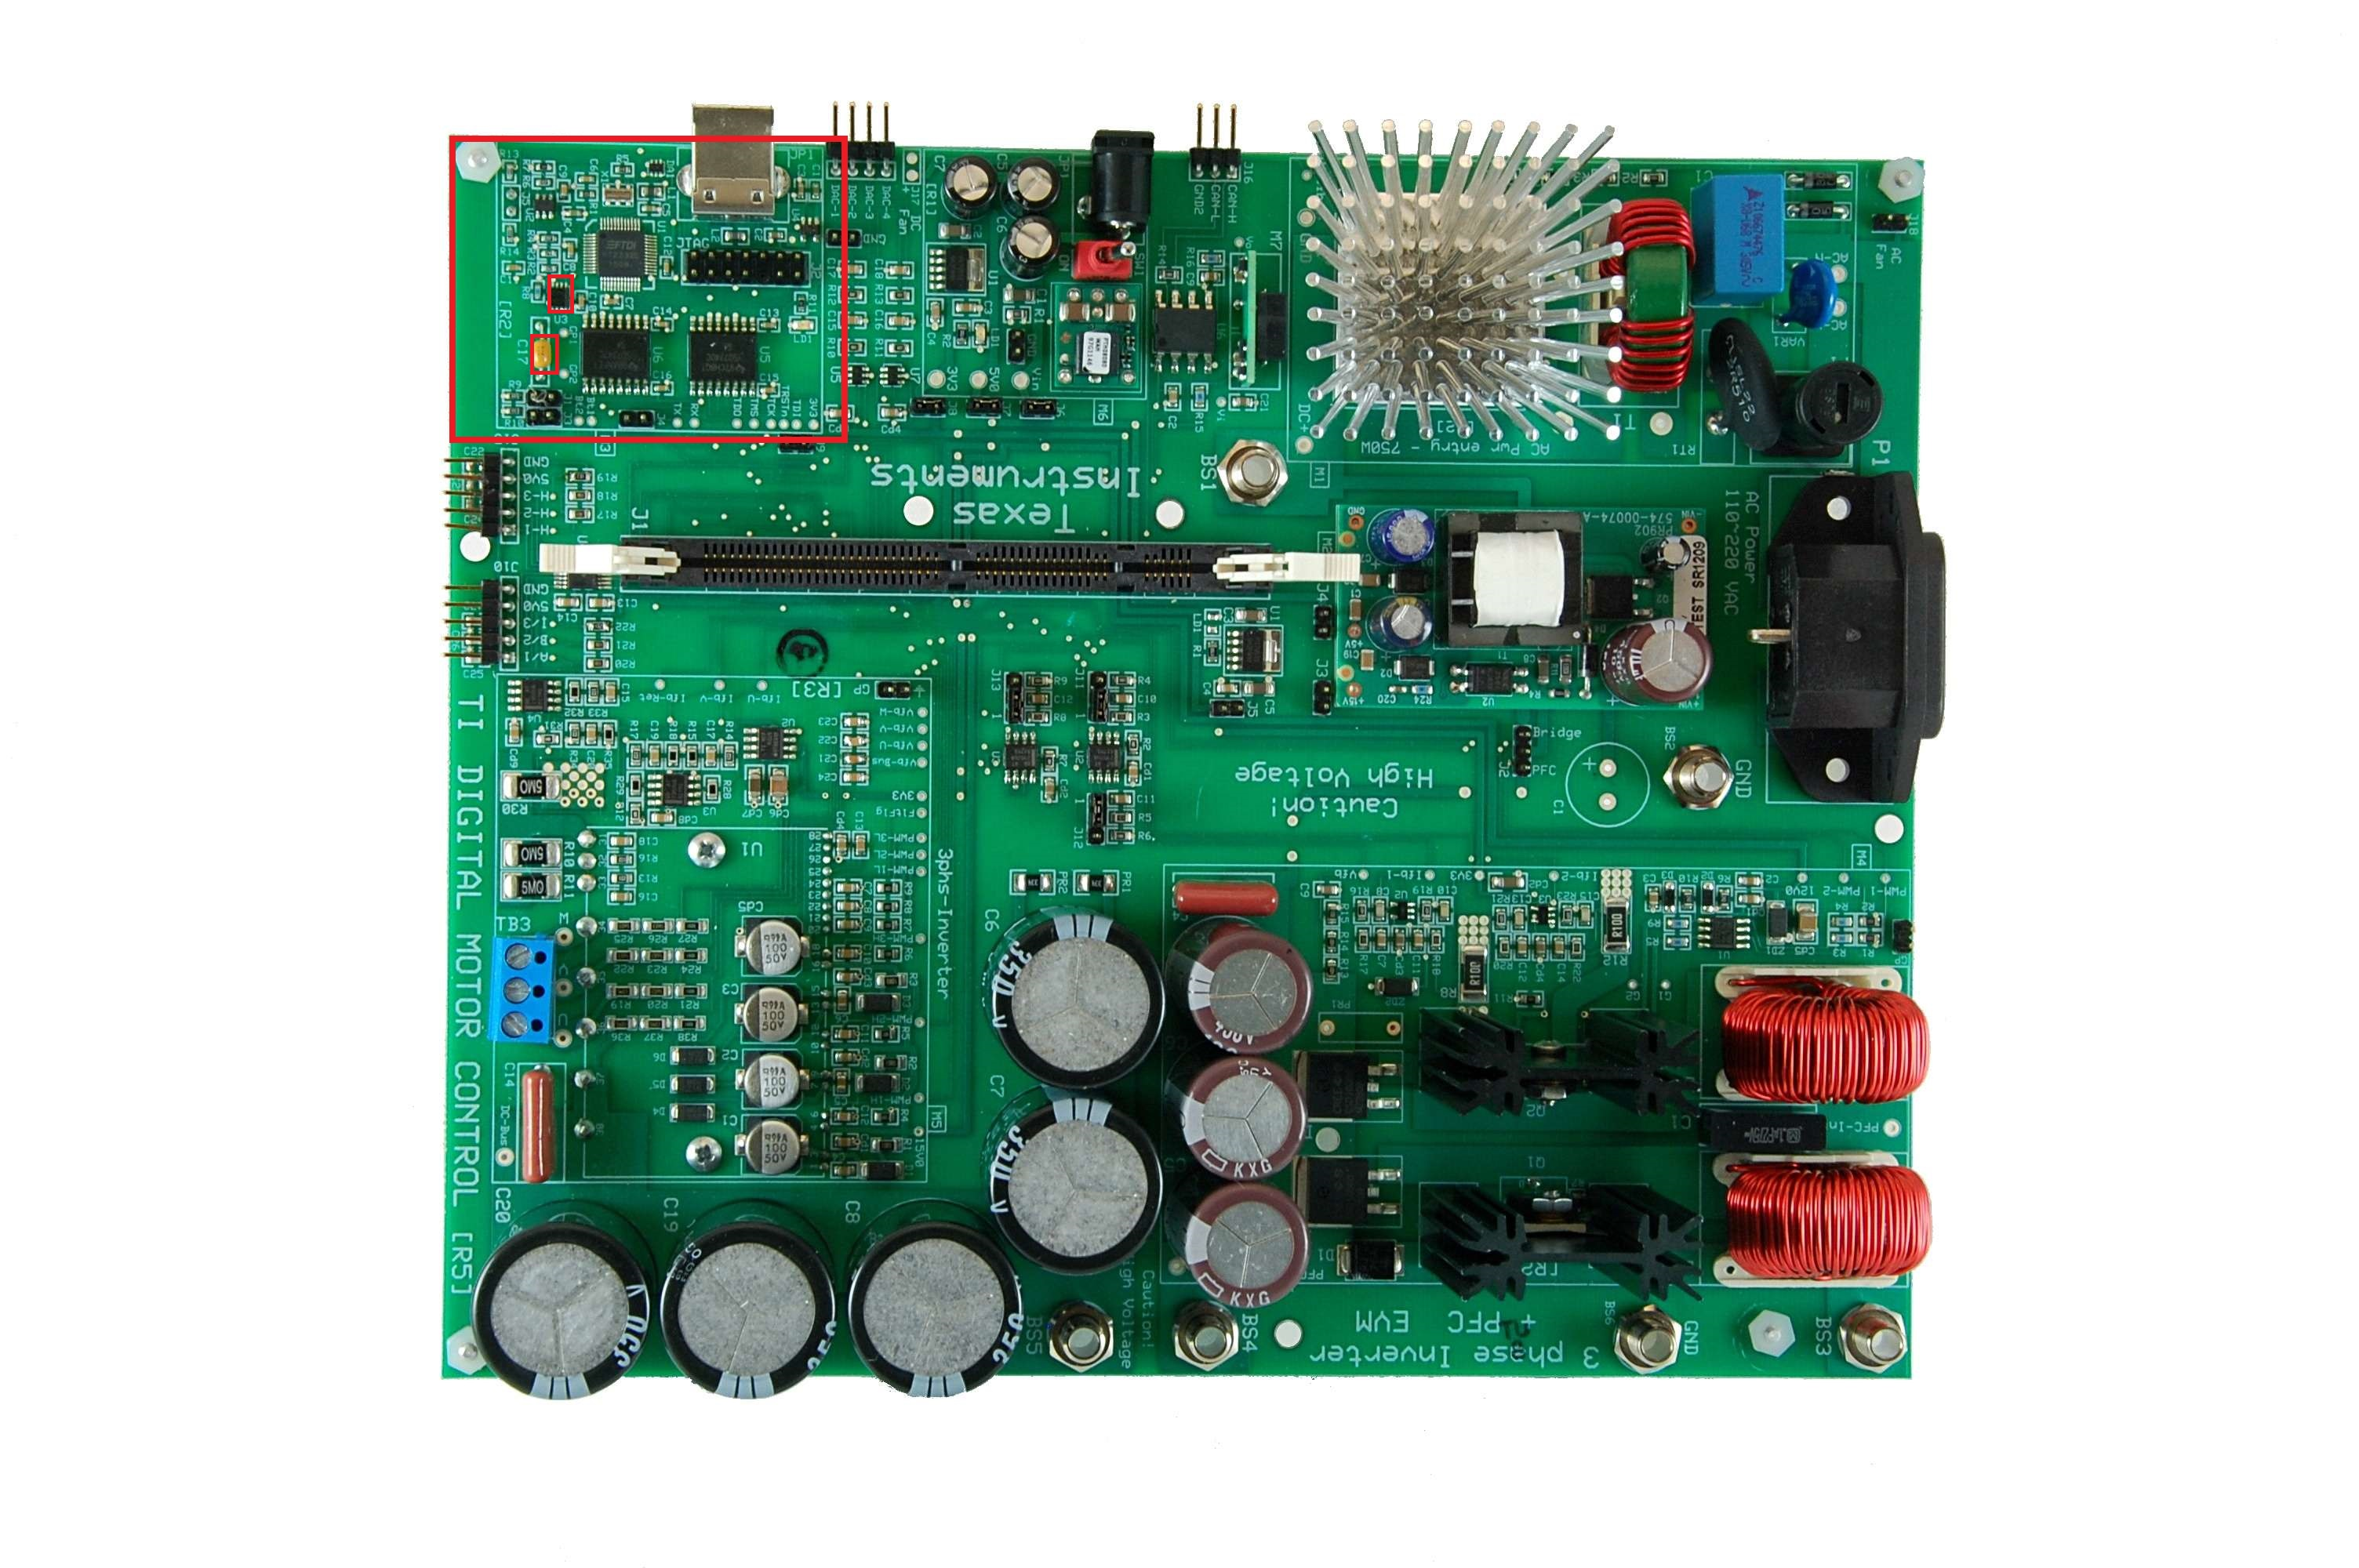 Tmdshvmtrpfckit Burnout After Jtag Disconnected C2000 Working Electronics Forum Circuits Projects And Microcontrollers So I Would Like To Know What Could Happend Are The Numbers Of Theese Parts Replace Them Continue My Experiments